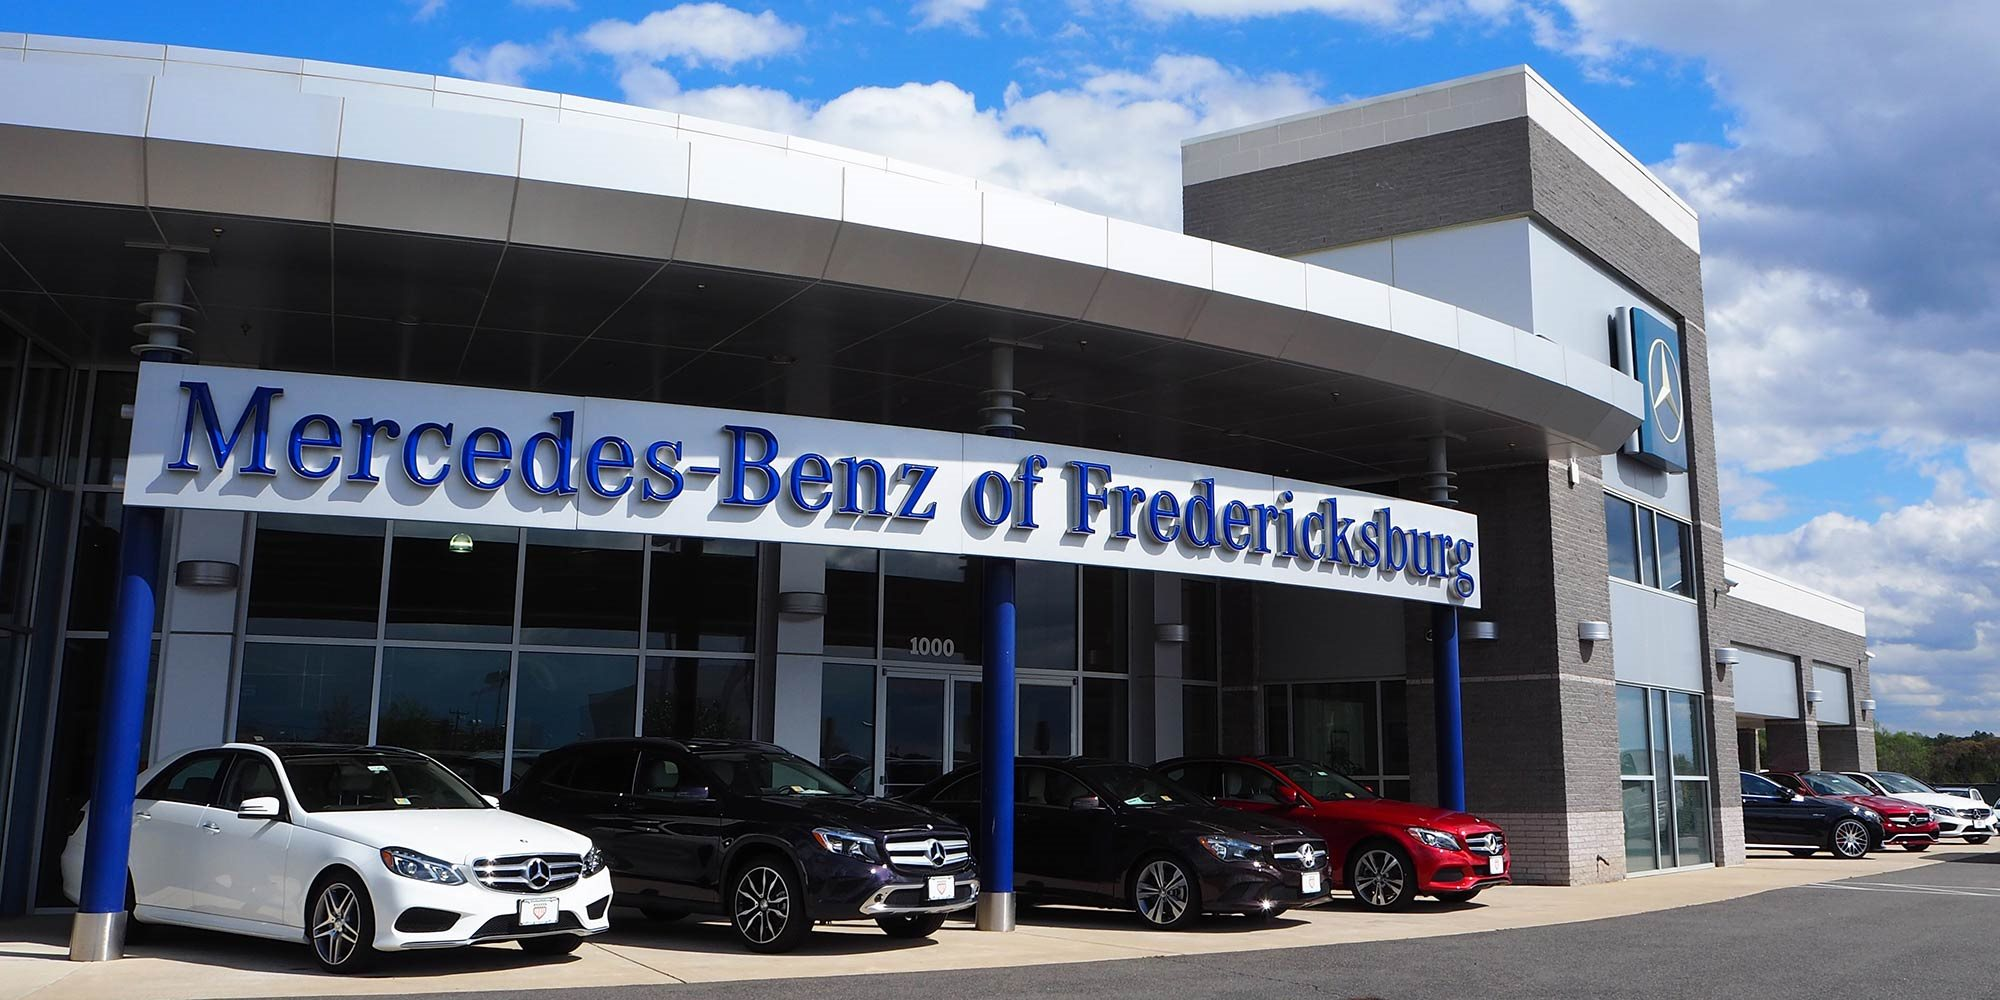 luxury used car dealerships in fredericksburg va used cars. Black Bedroom Furniture Sets. Home Design Ideas